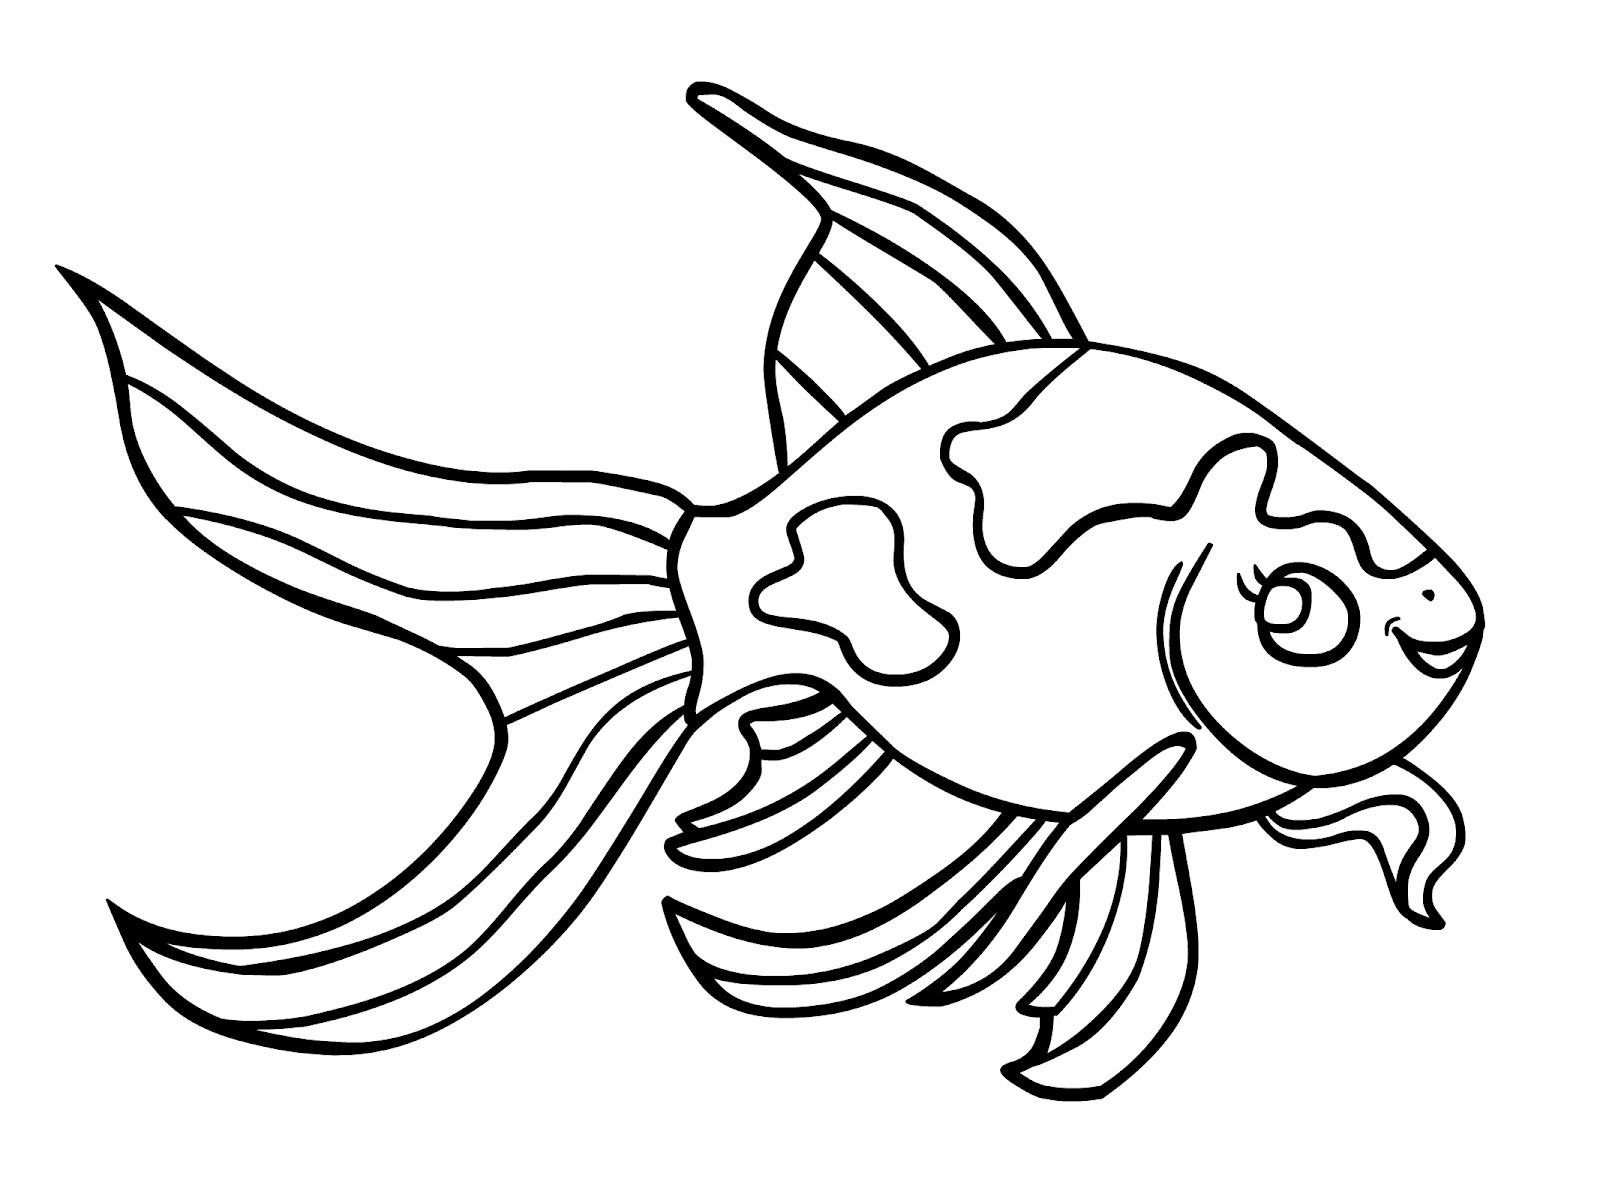 Free coloring book printouts - Co Coloring Pages Fish Free Gold Fish Coloring Pages Printable Goldfish Coloring Pages Coloringkids Co